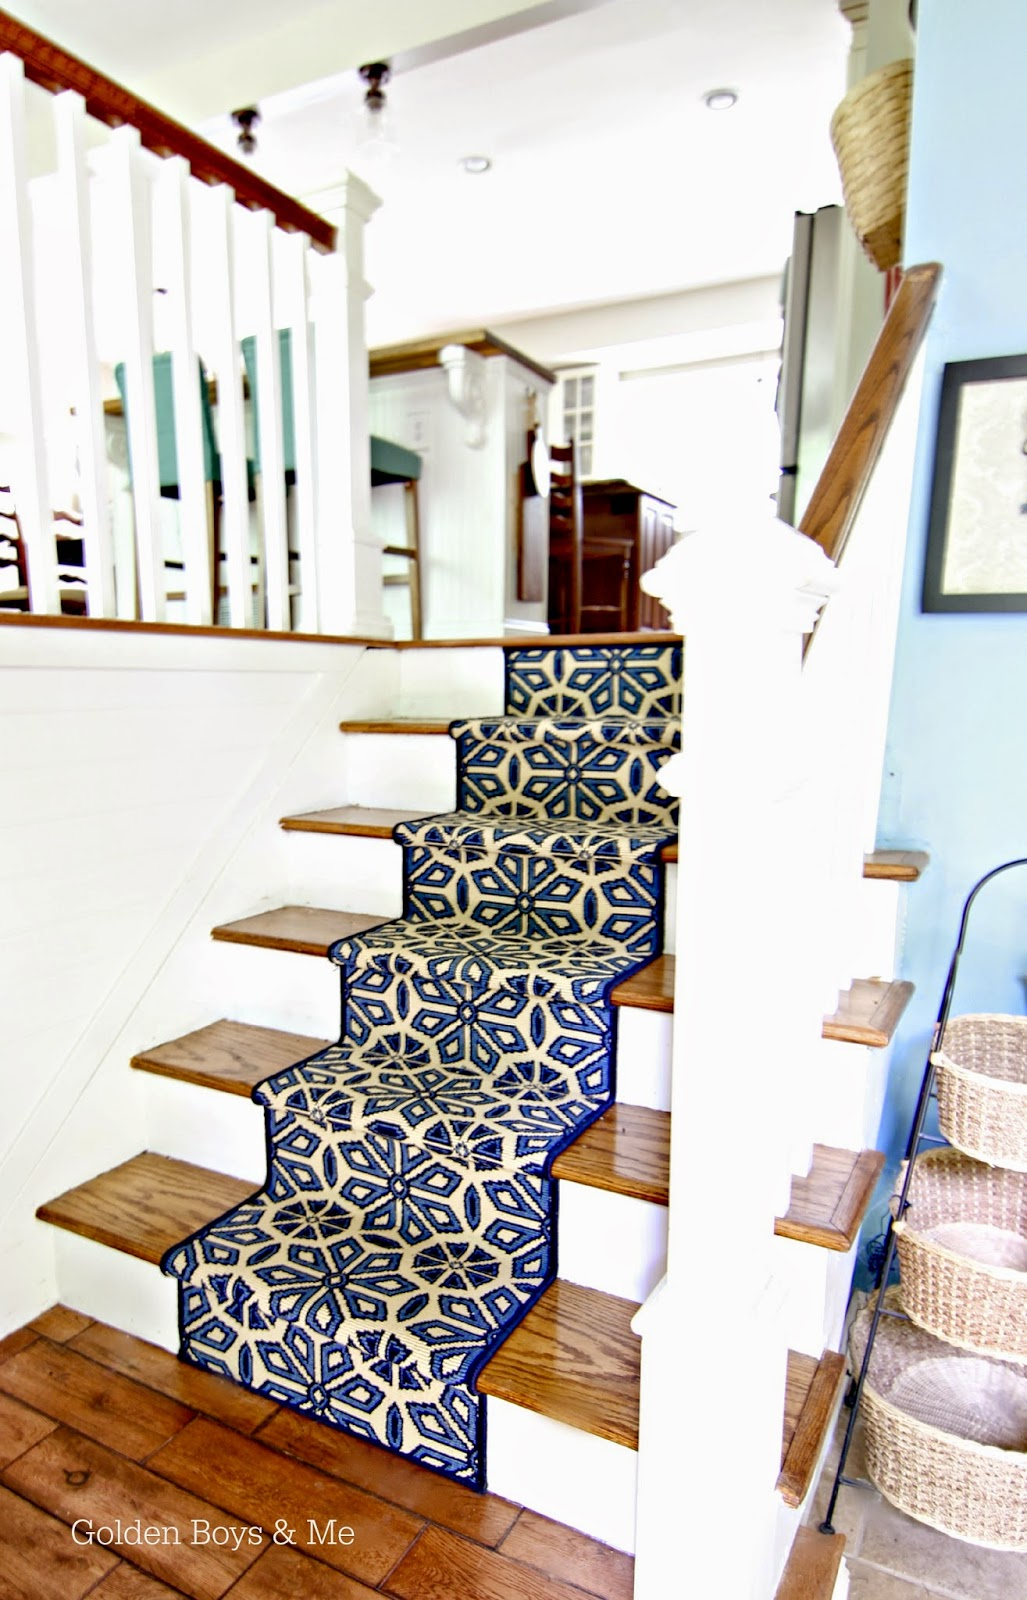 Golden Boys And Me Diy Stair Runner | Indoor Outdoor Carpet Runners For Stairs